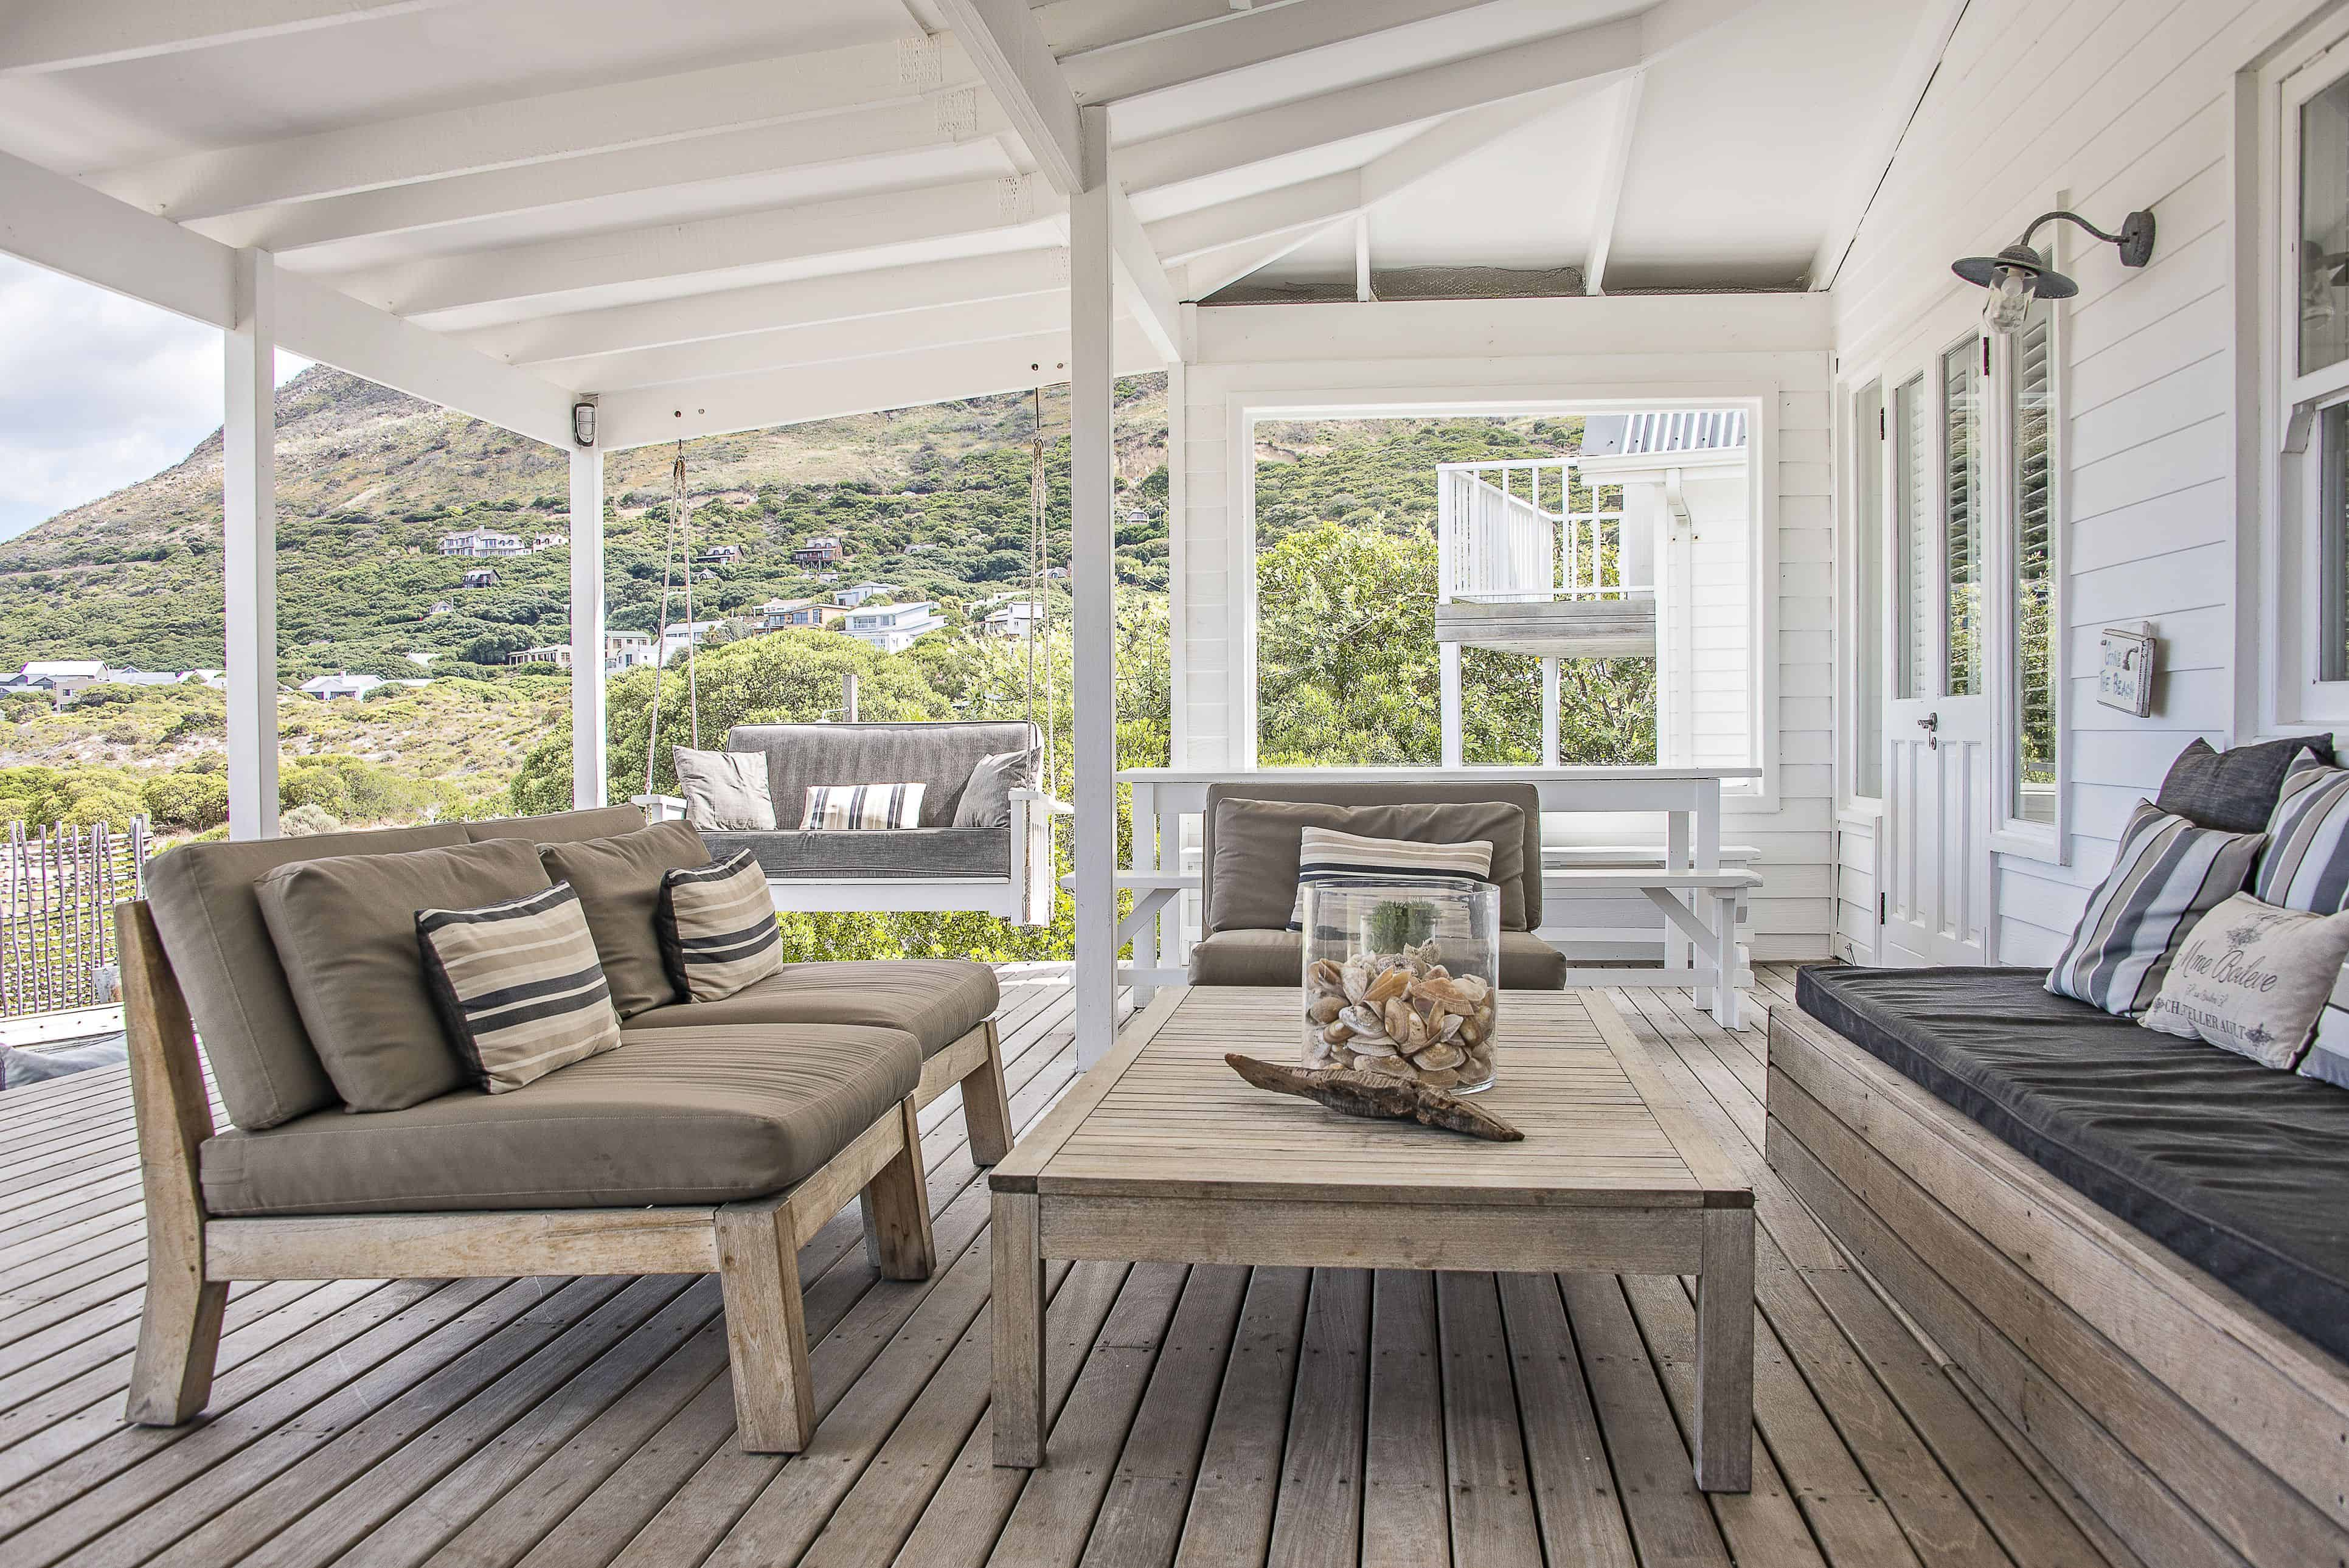 11 patio ideas for the perfect backyard